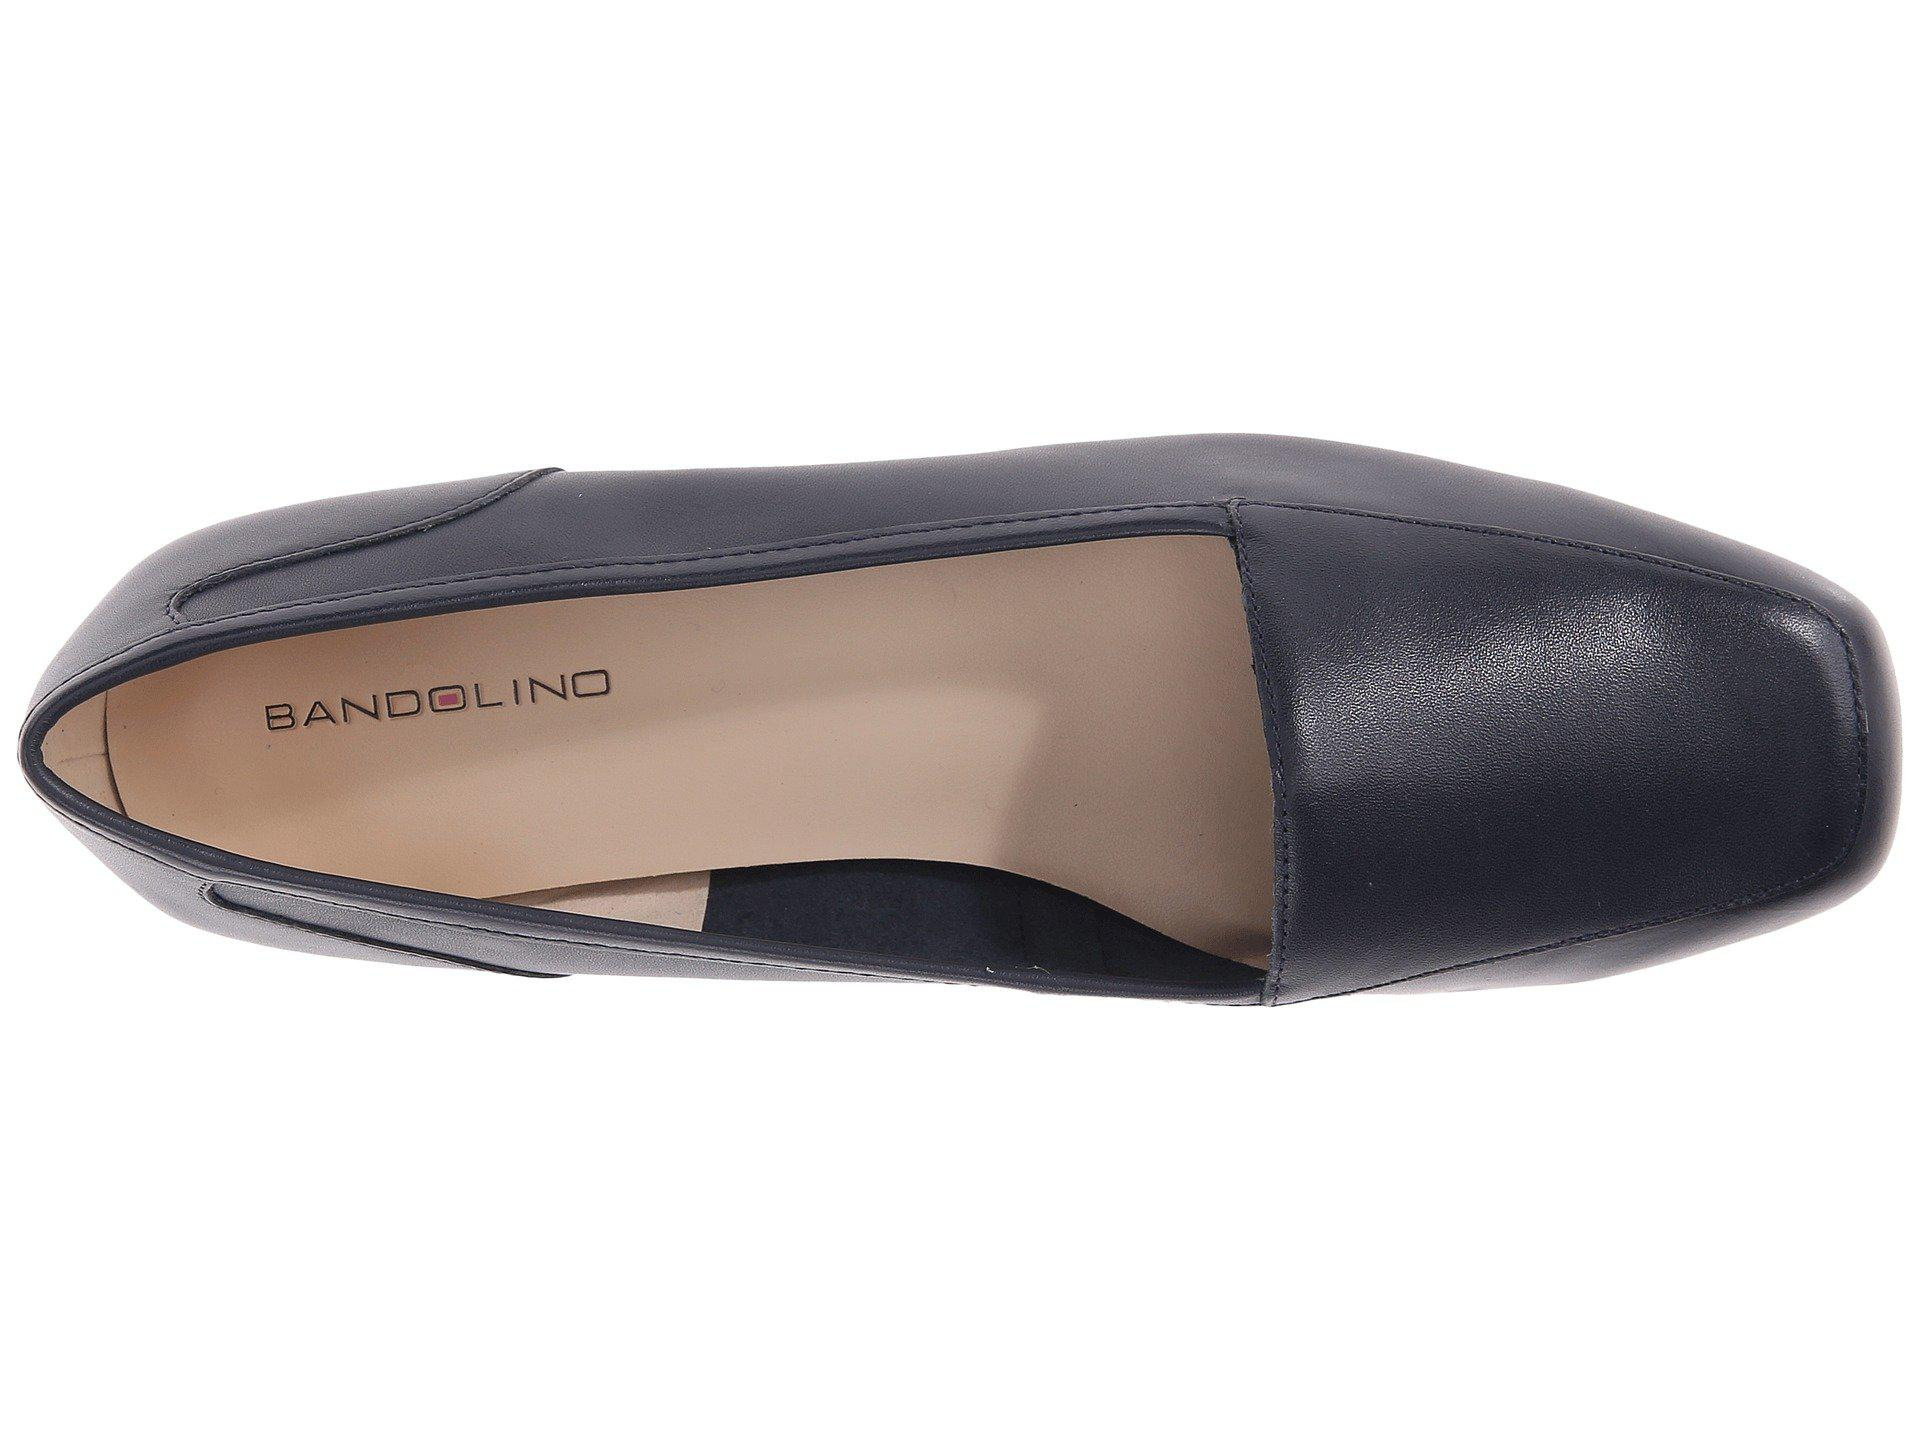 bfcff9bc91 Bandolino - Blue Liberty (black Leather) Women s Slip On Shoes - Lyst. View  fullscreen